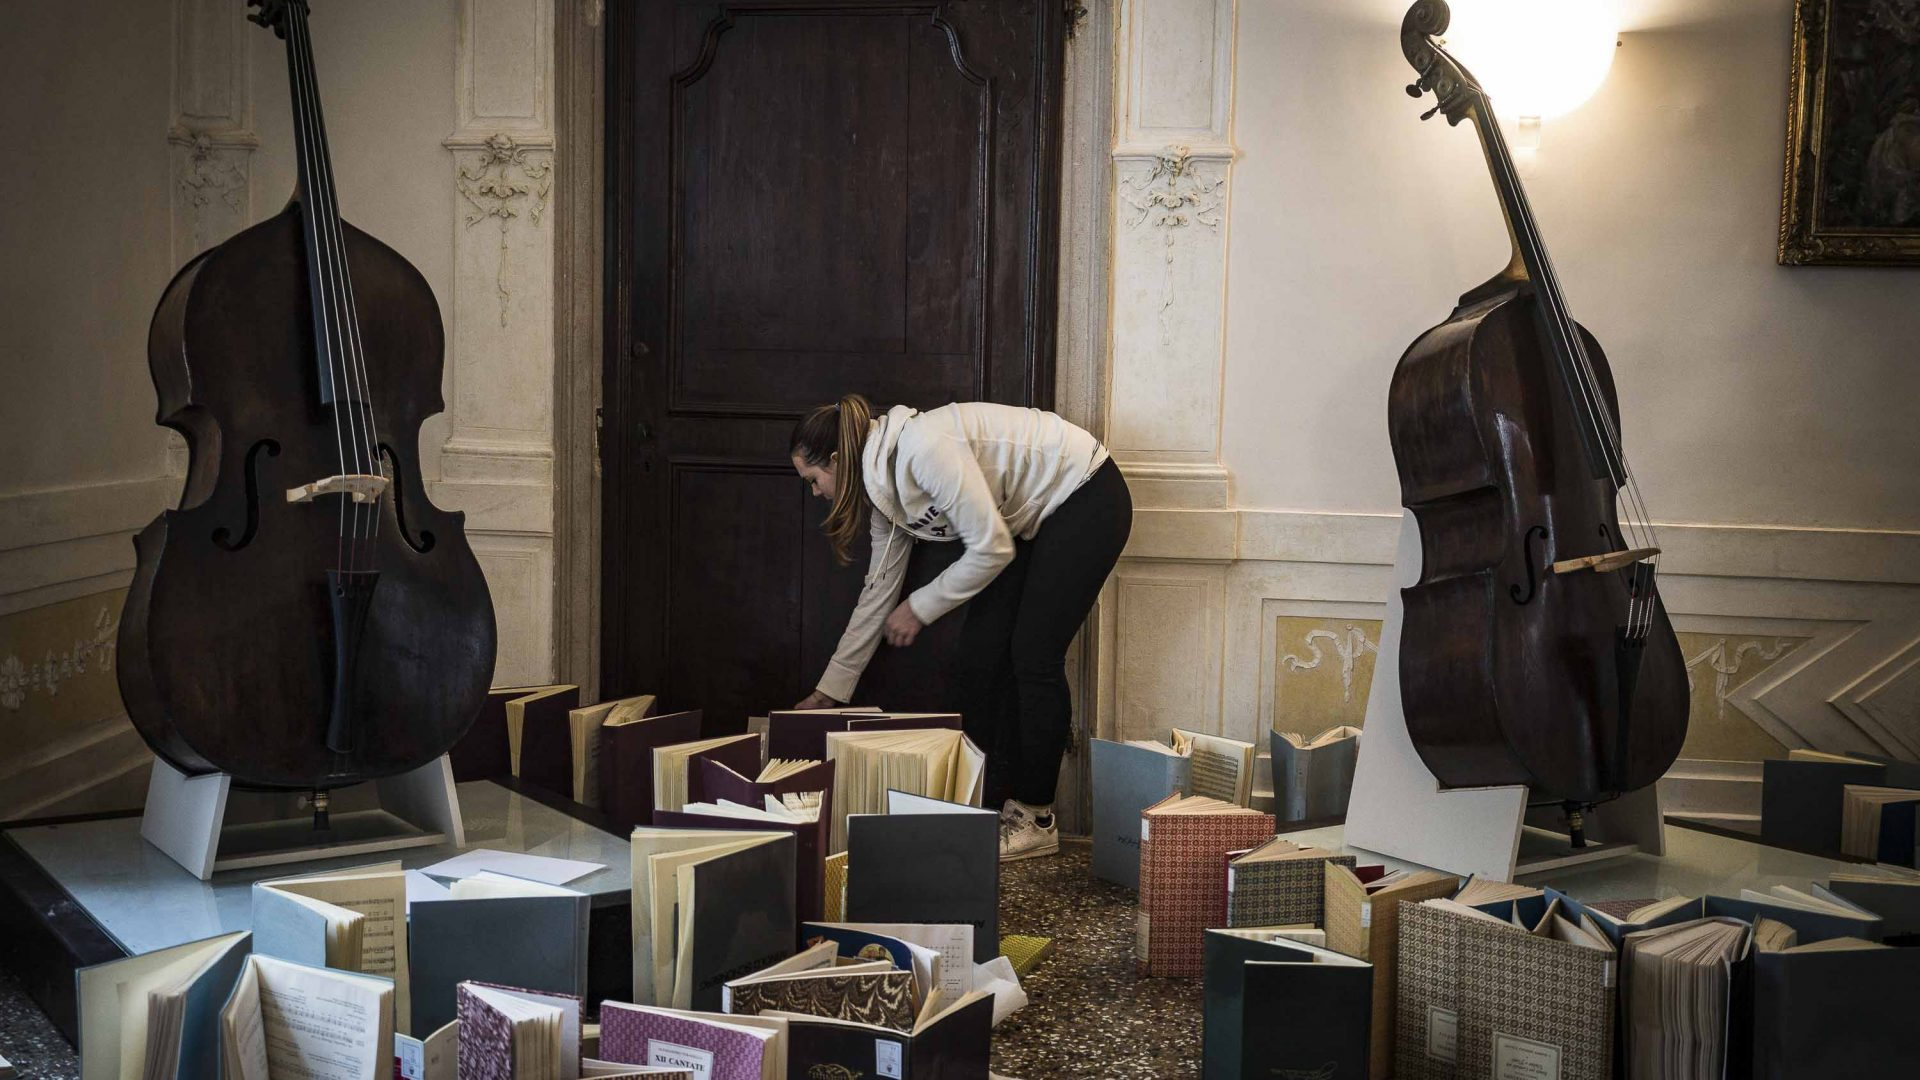 A volunteer student checks important volumes at Venice's Conservatory of Music.